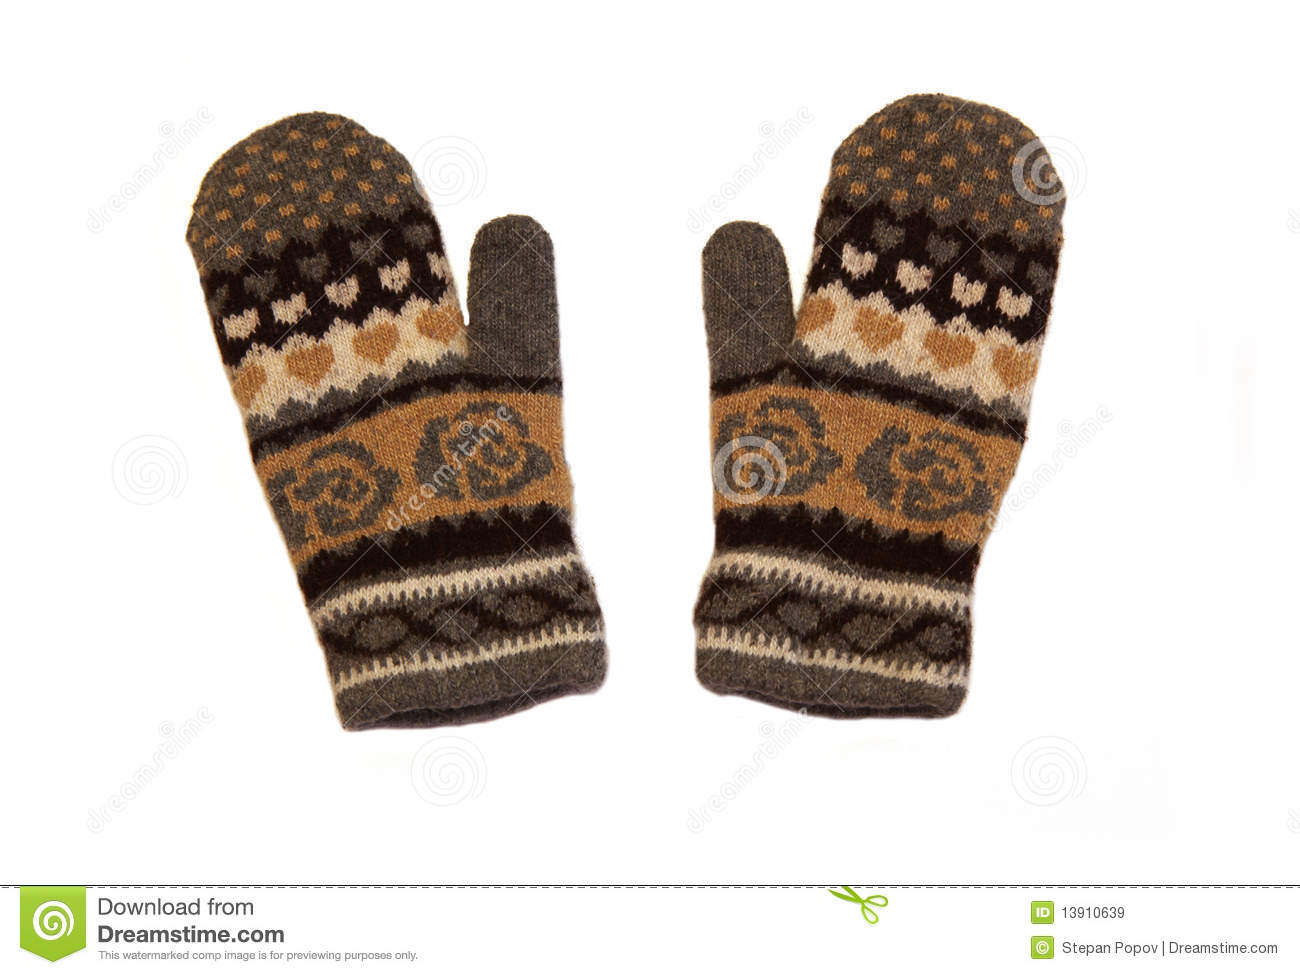 Knitted Gloves Royalty Free Stock Images - Image: 13910639